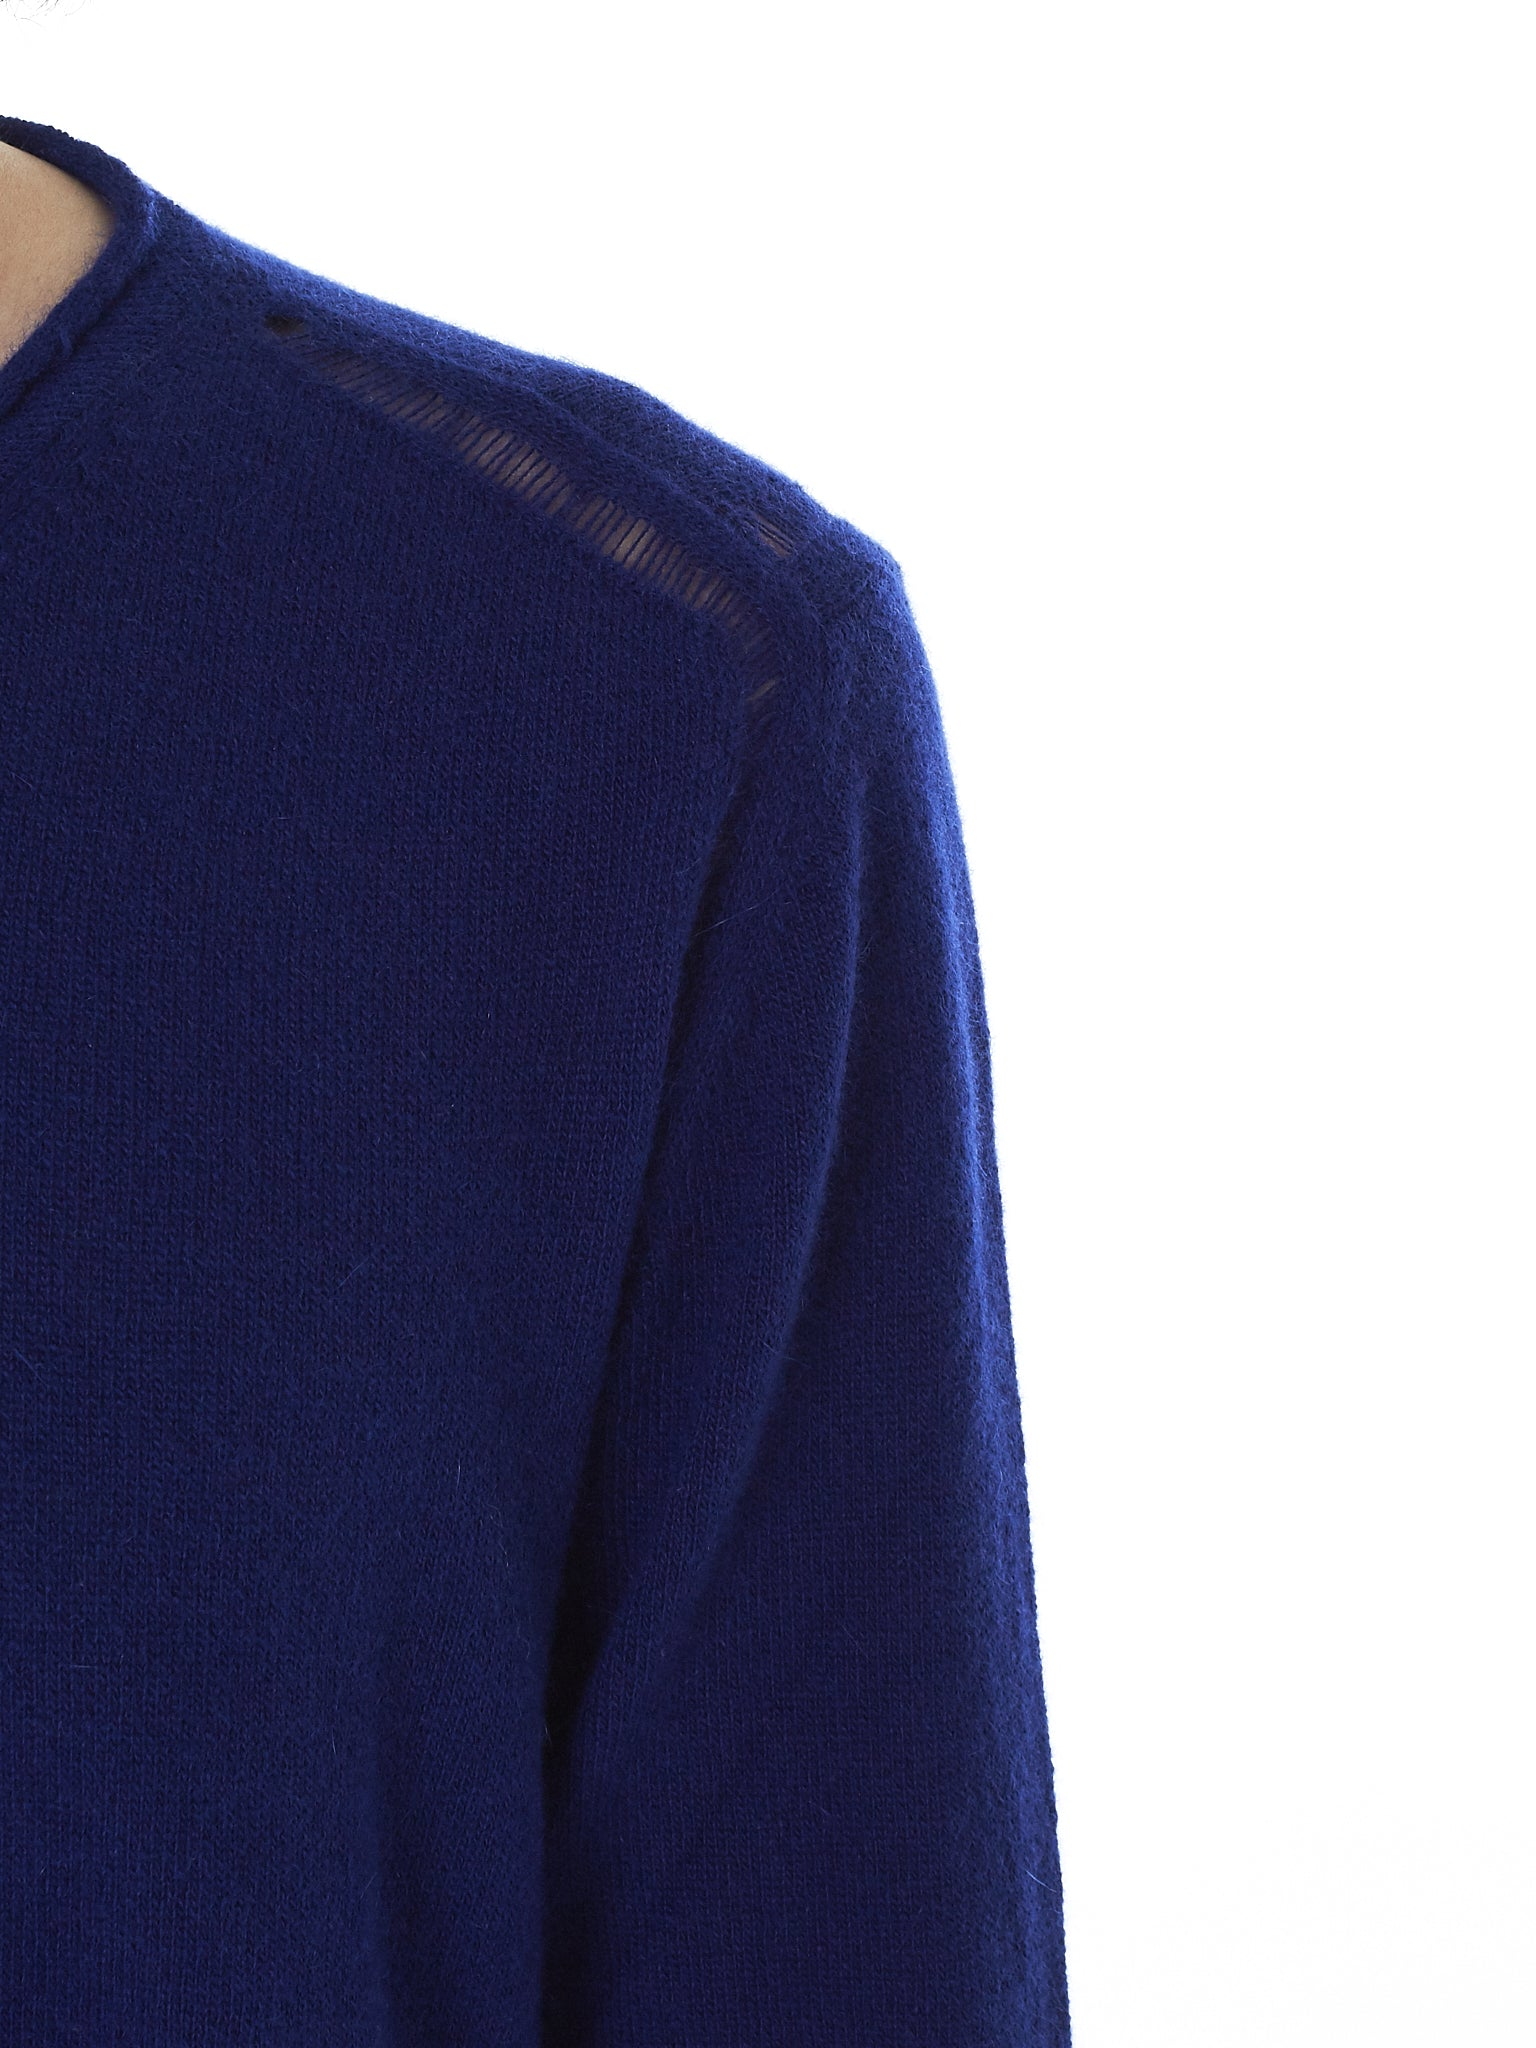 Lost & Found Sweater - Hlorenzo Detail 3